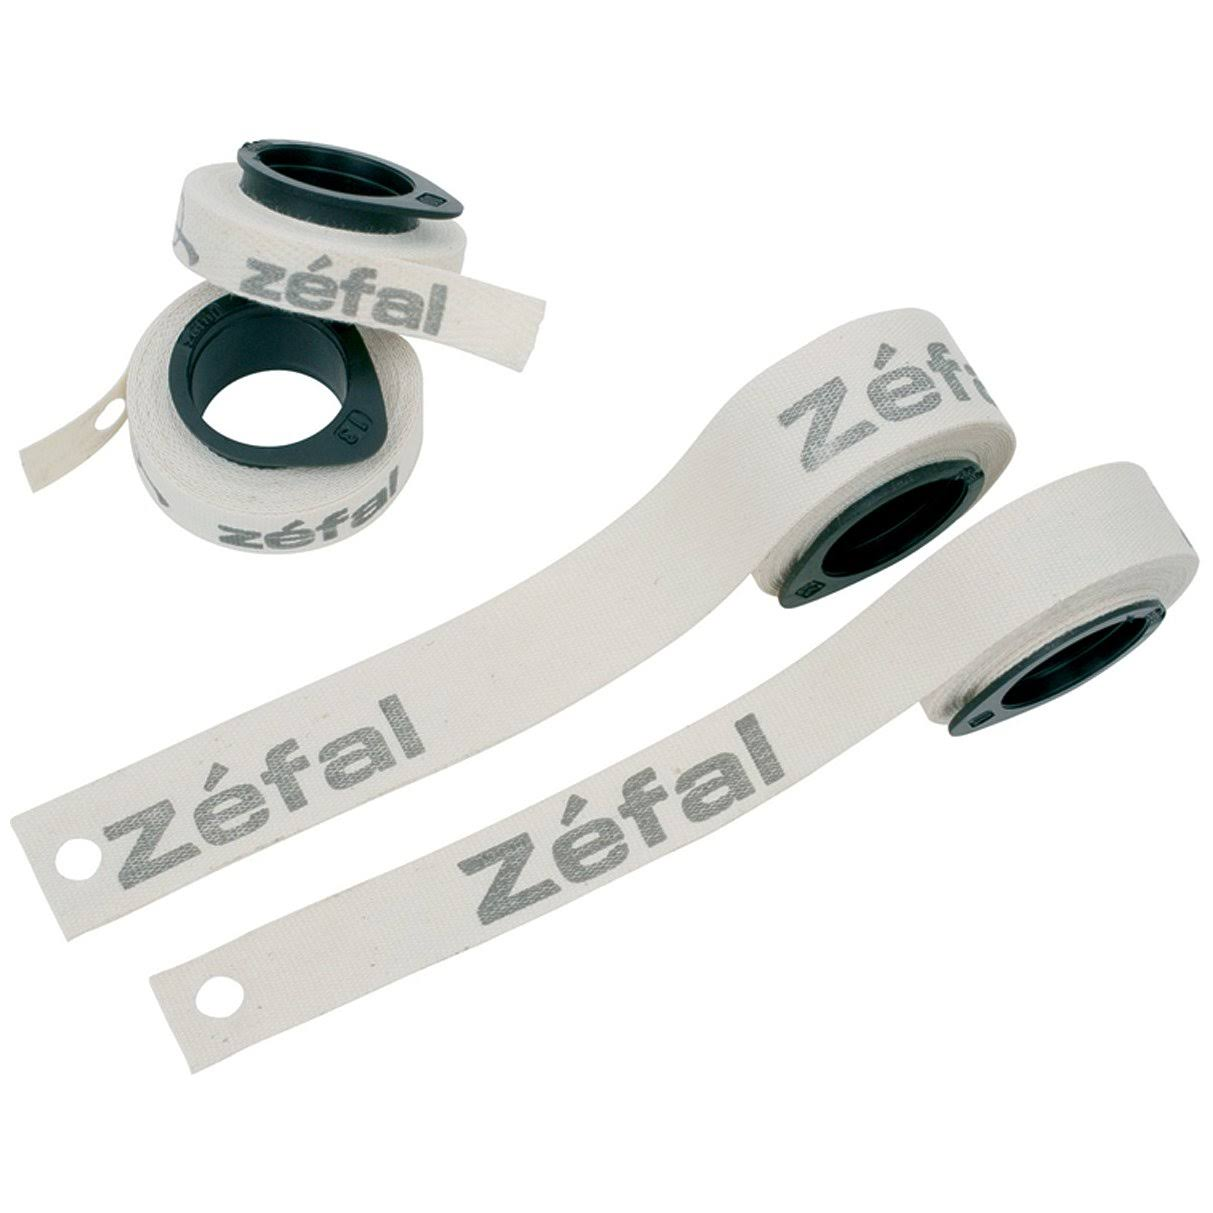 Zefal Bicycle Rim Tape - 13mm, Pair